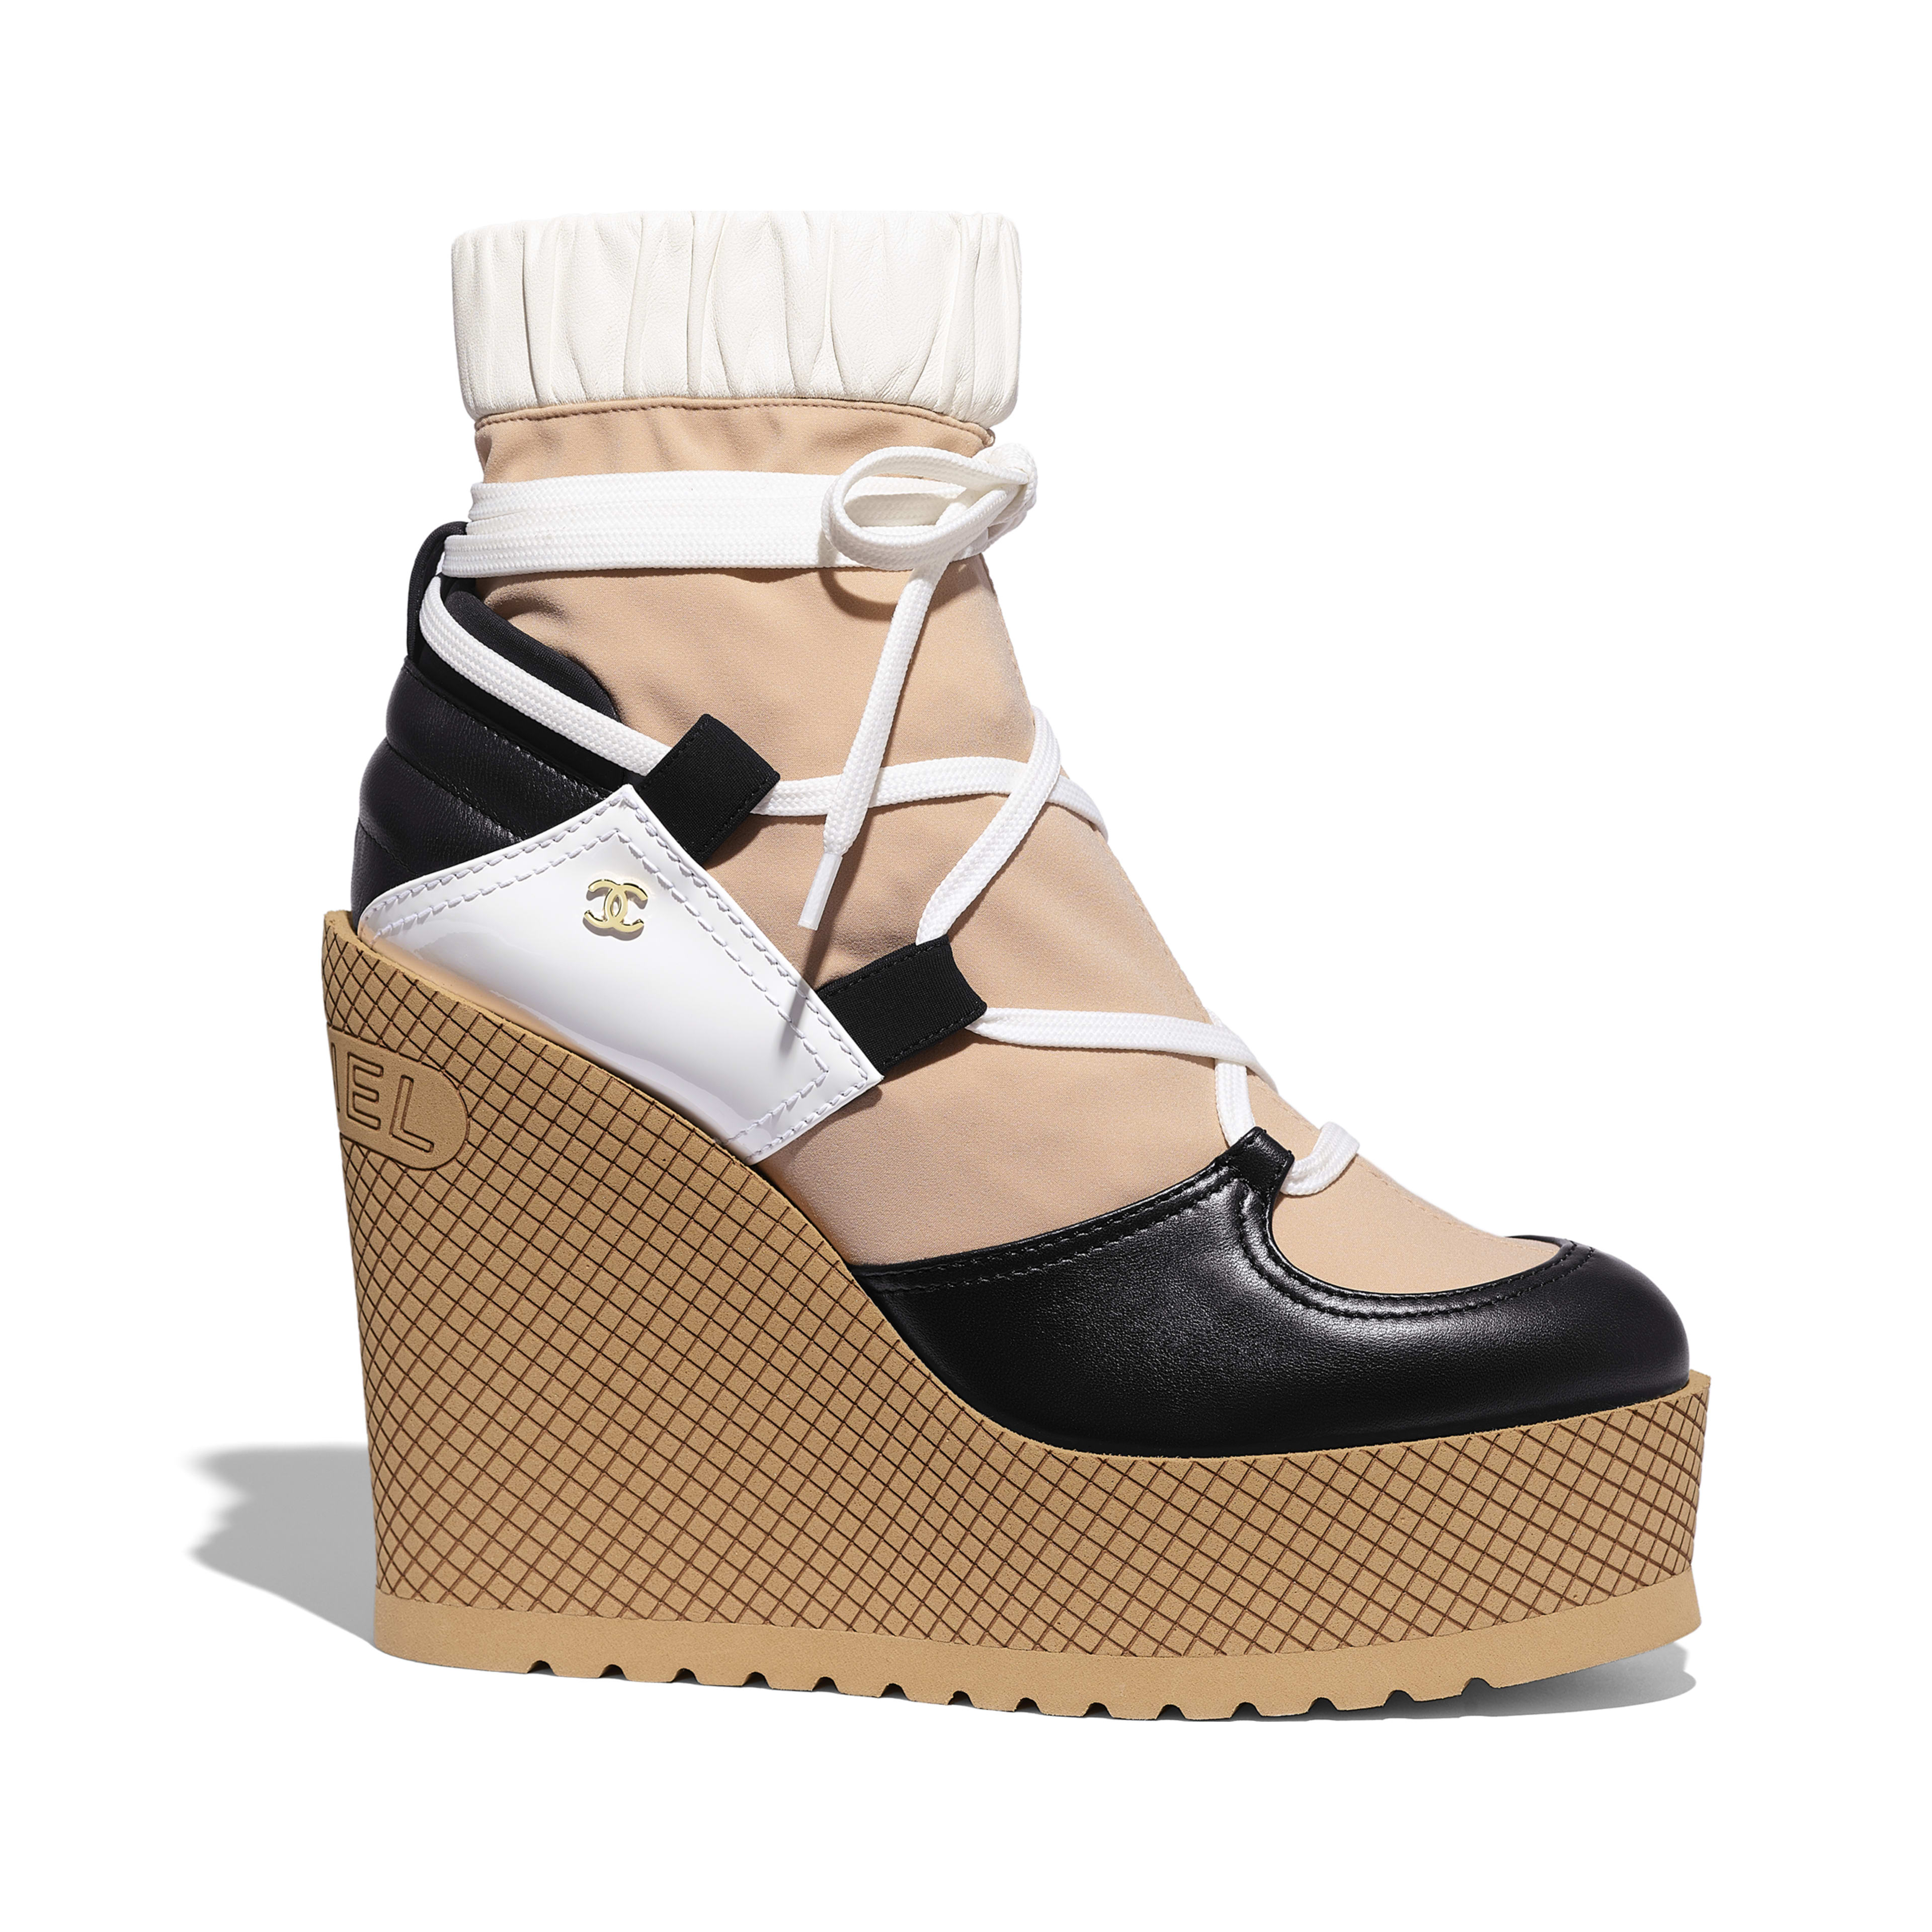 Lace-Ups - Beige, Black & White - Mixed Fibers, Lambskin & Calfskin - Default view - see full sized version